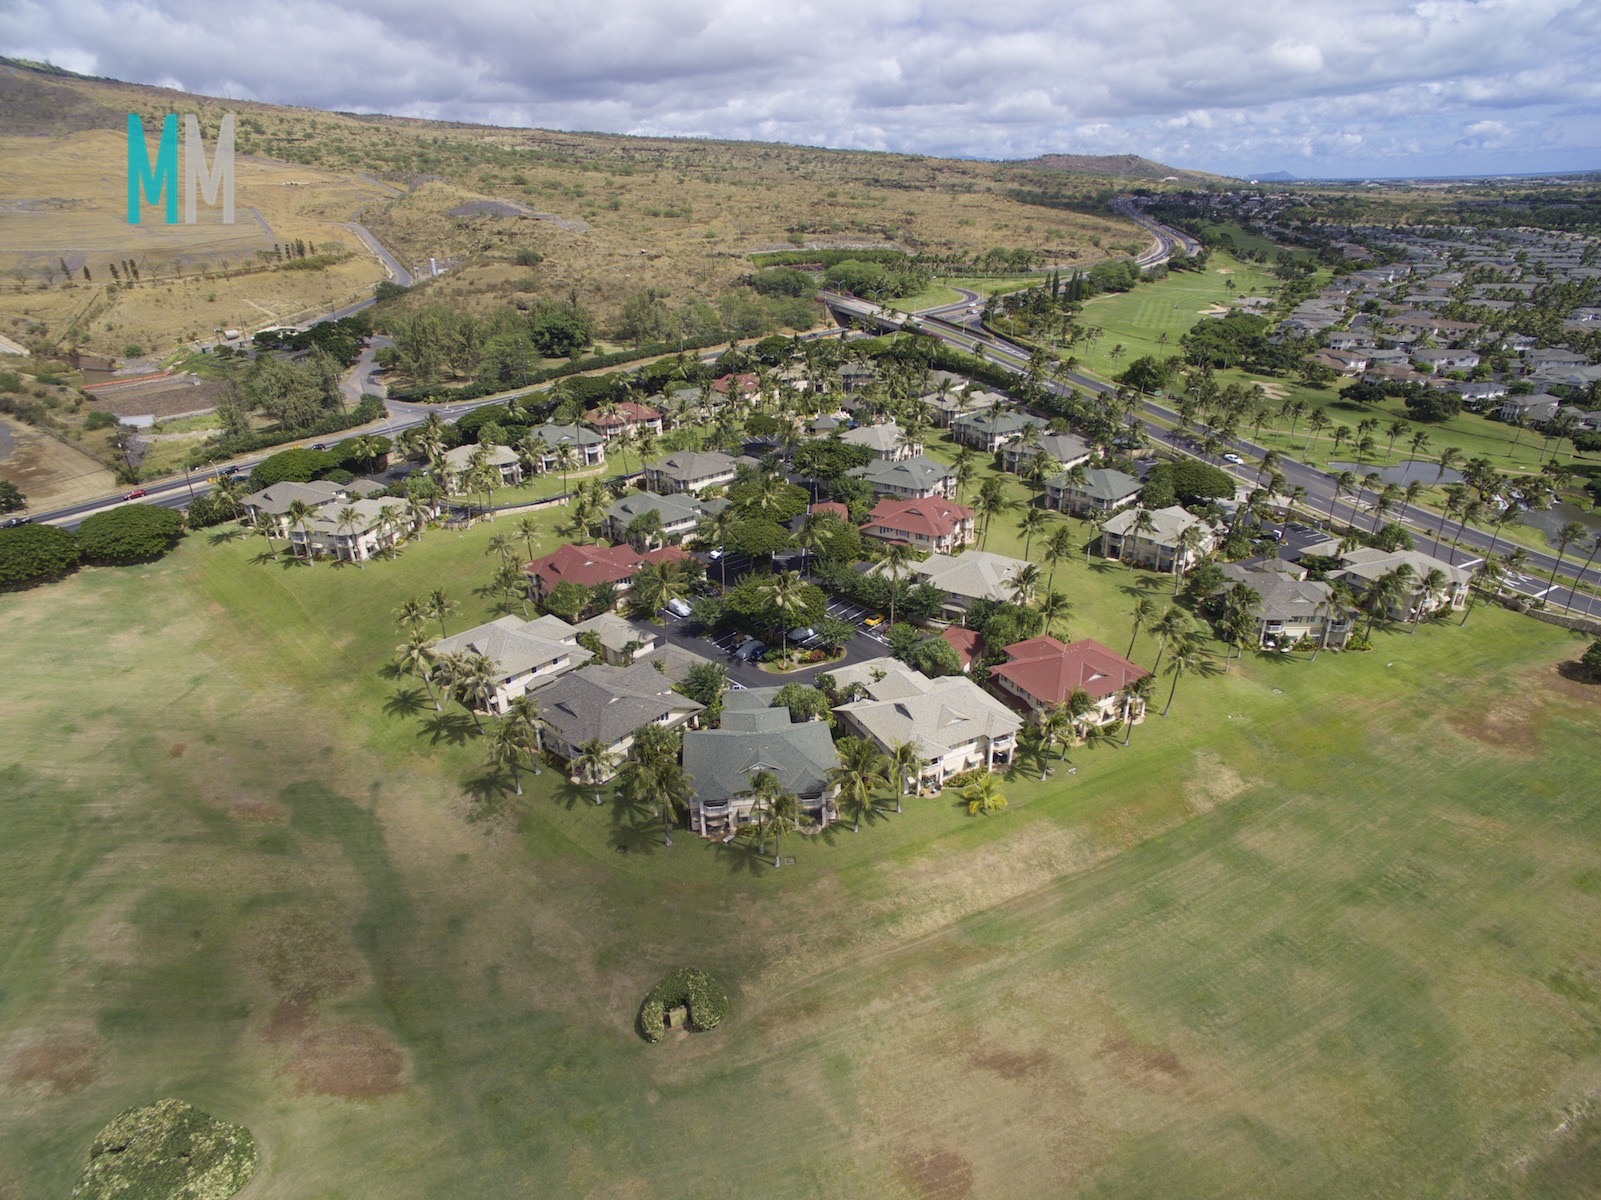 kai-lani-ko-olina-aerial-view-munro-murdock-hawaii-real-estate-dji_0053